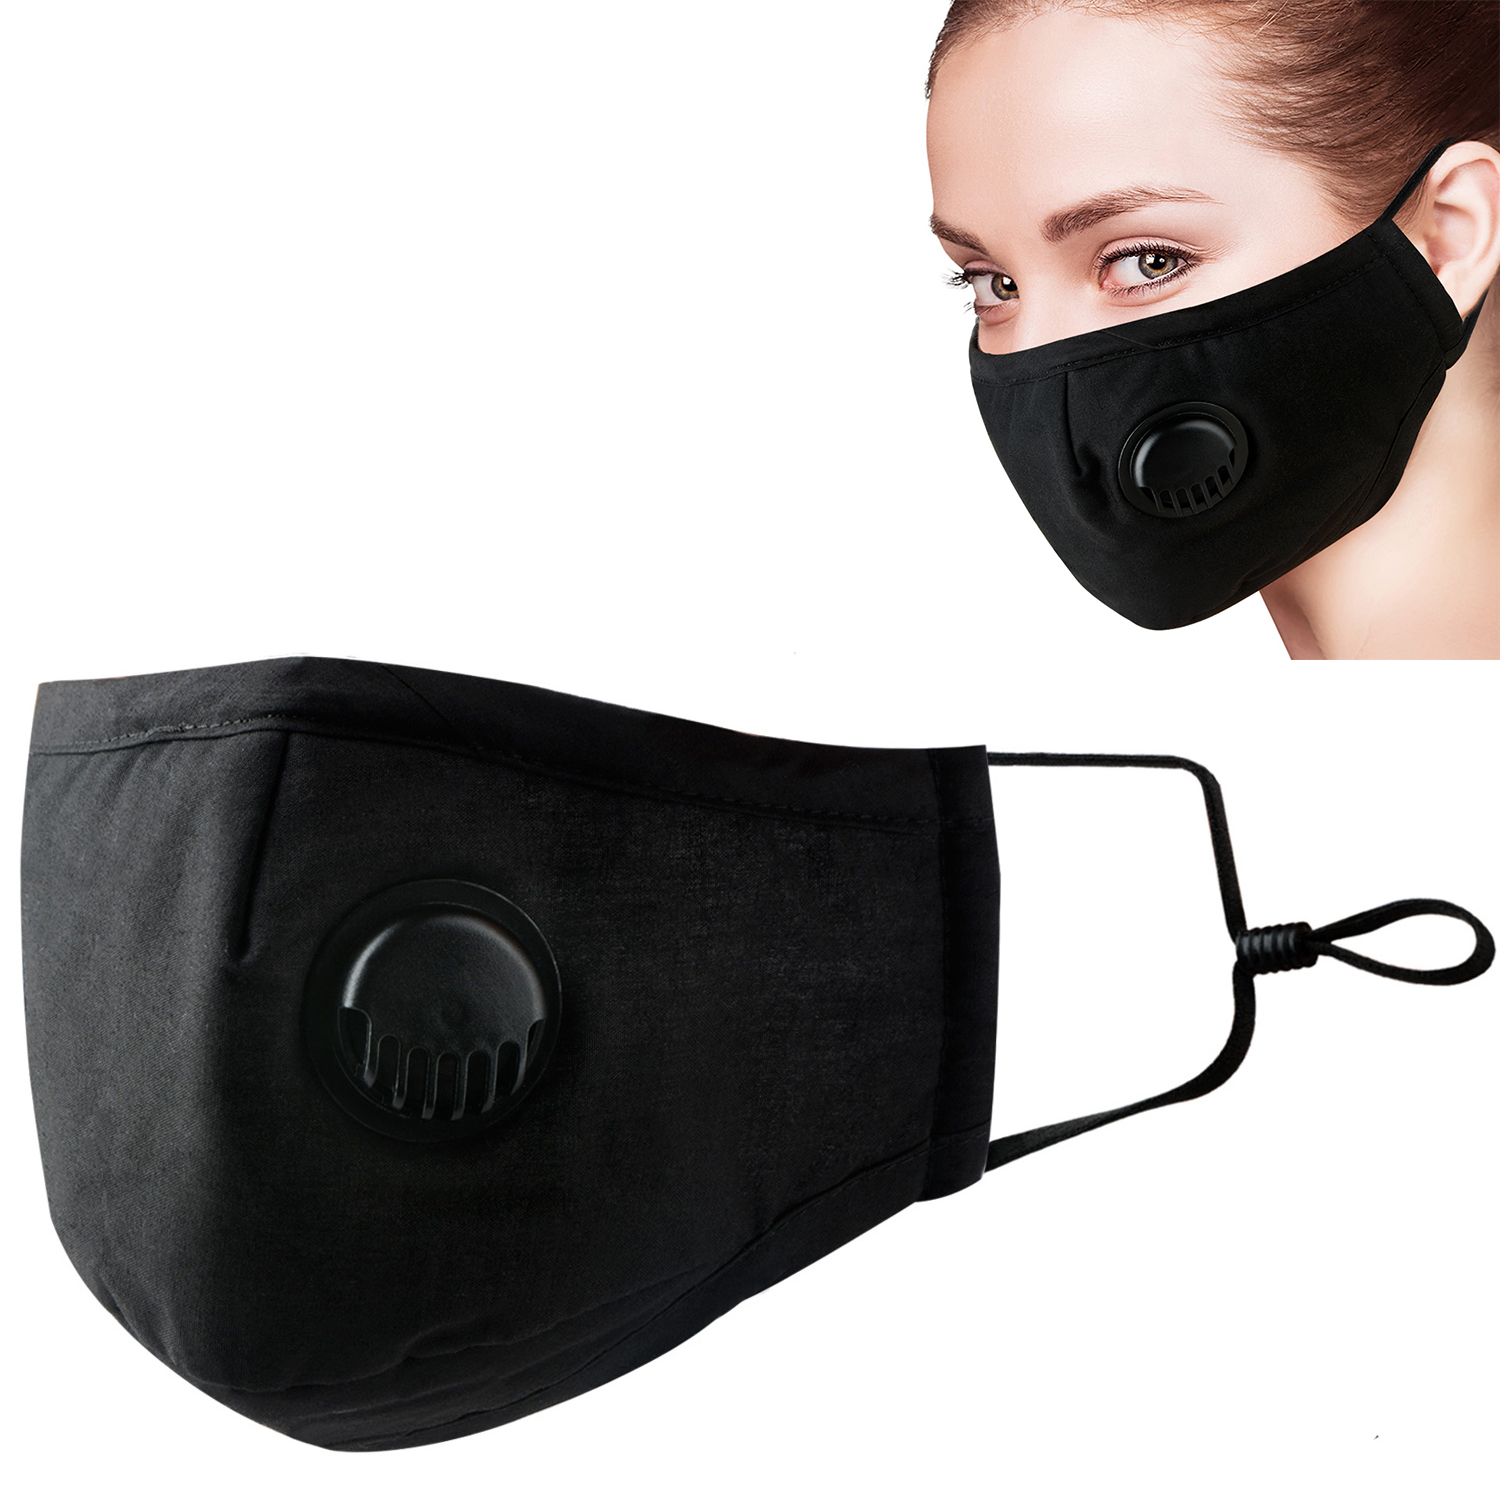 1pc/10pcs Face Mask Dust Masks Insert Black Breathable Valve  Mask PM2.5 Activated Carbon Filter Mouth Cover